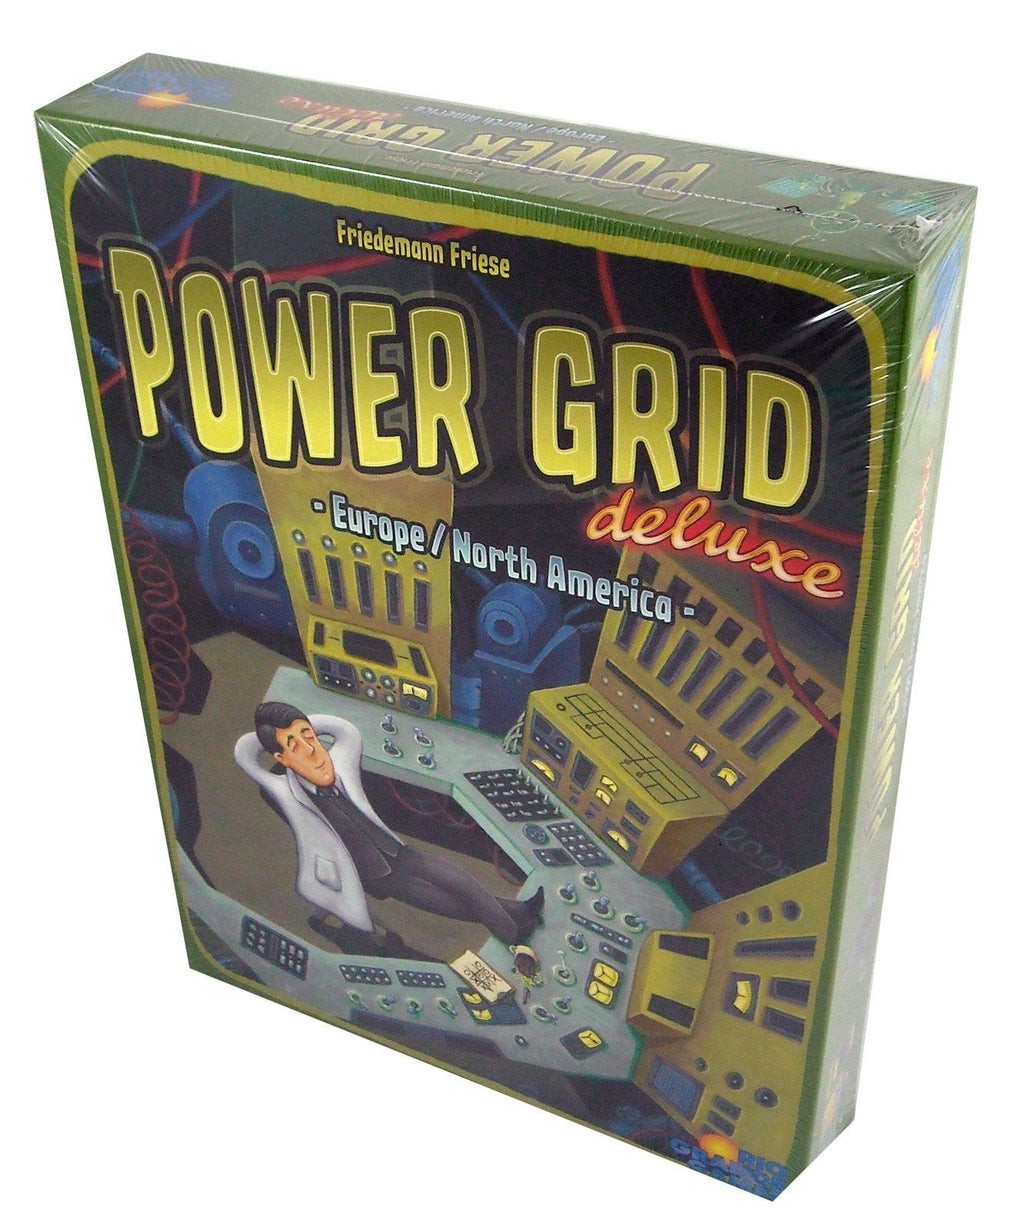 Power Grid Deluxe Europe/North America